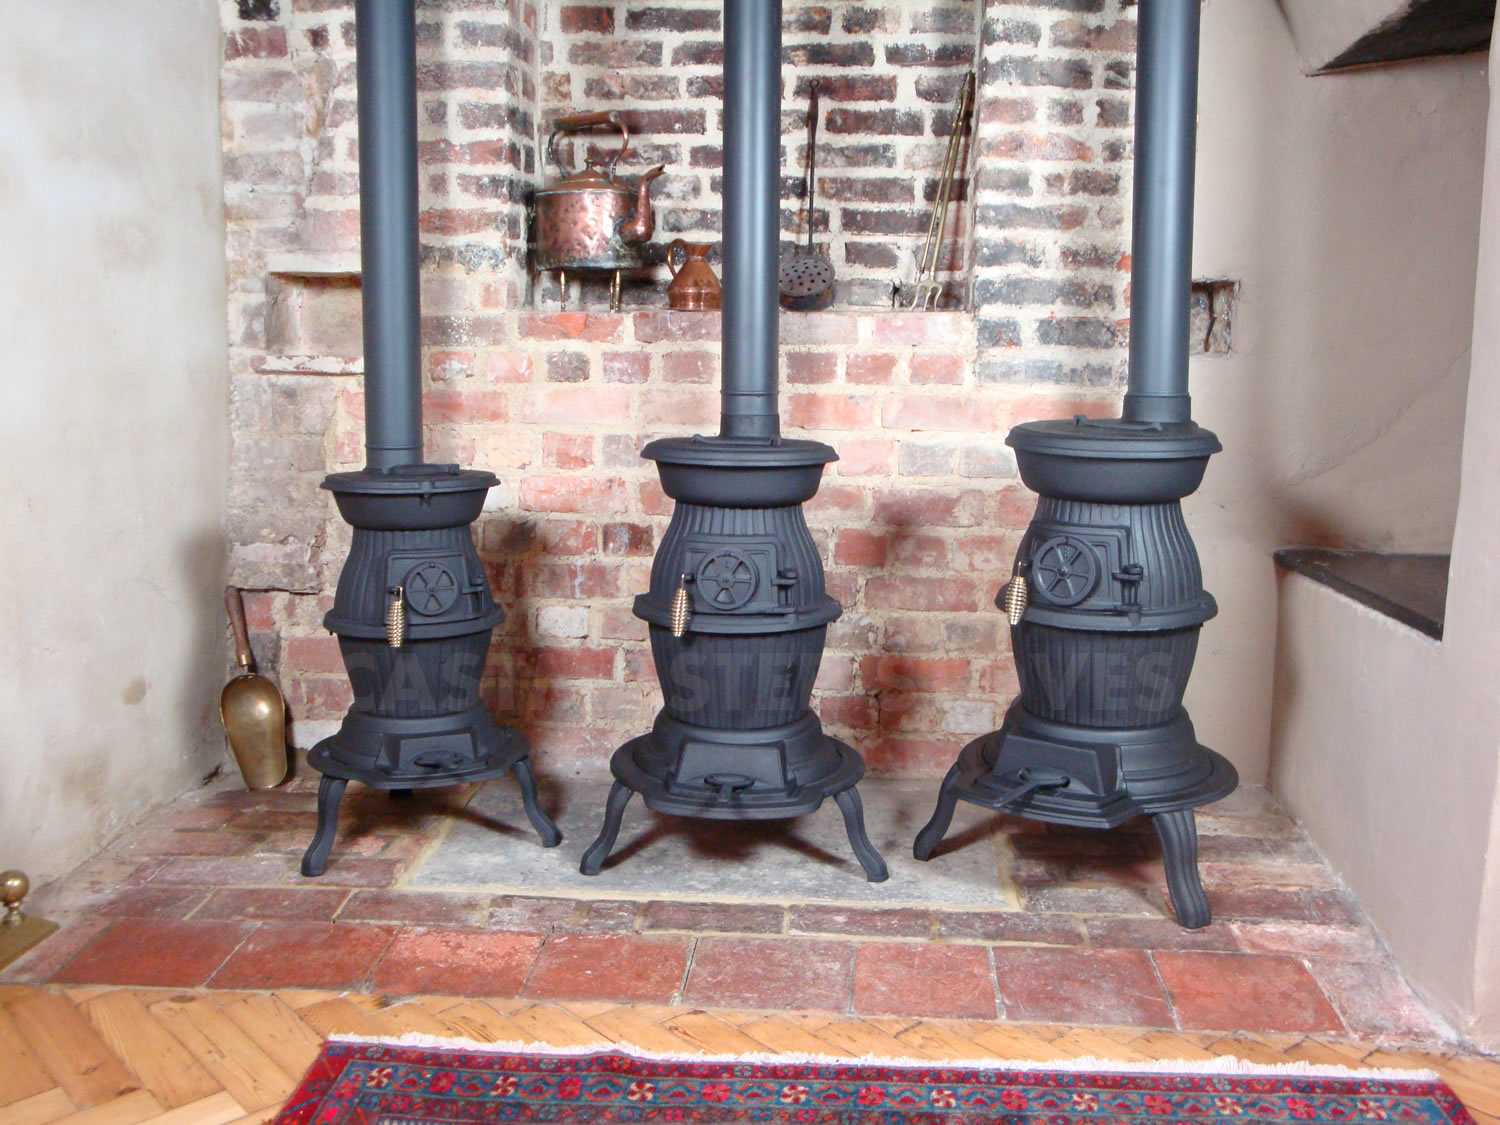 Cast Iron Pot Belly Wood Burning Stove Narrow Boat Workshop Patio Heater Ebay